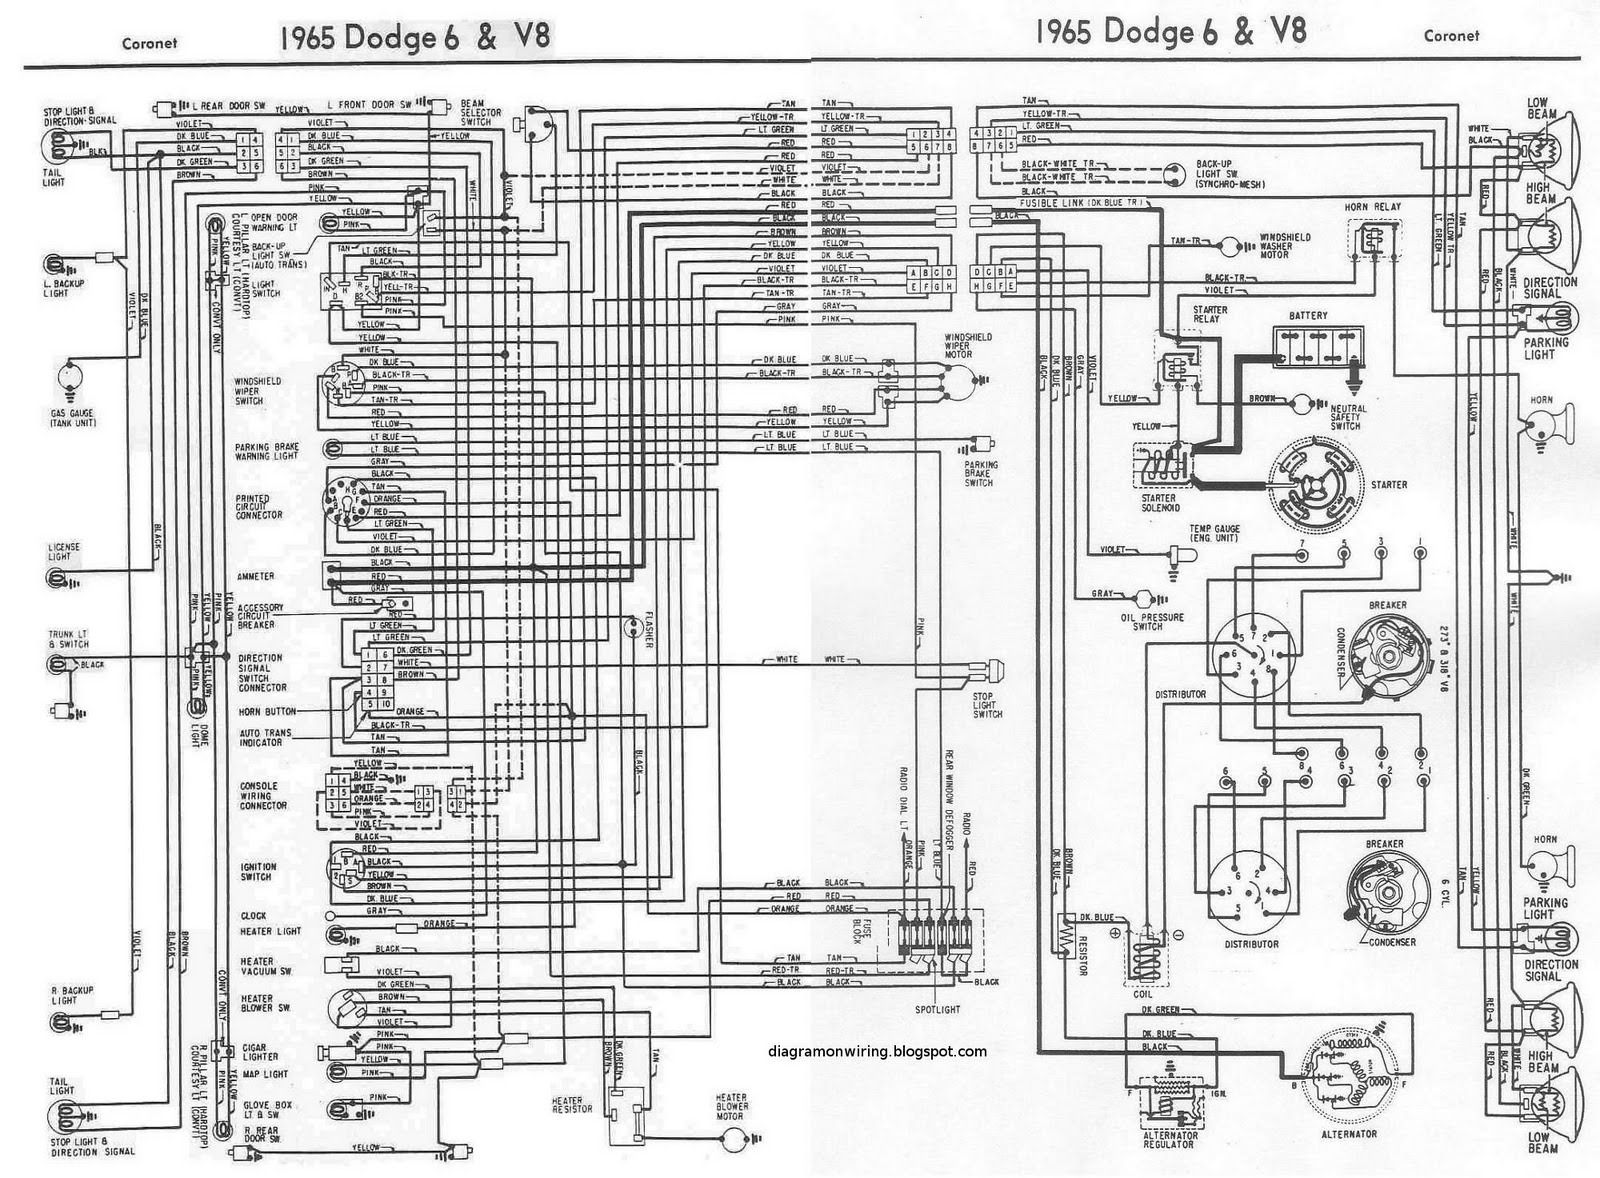 1967 dodge wiring diagram wiring diagram blog 67 dodge ignition wiring diagram circuit diagrams image [ 1600 x 1178 Pixel ]